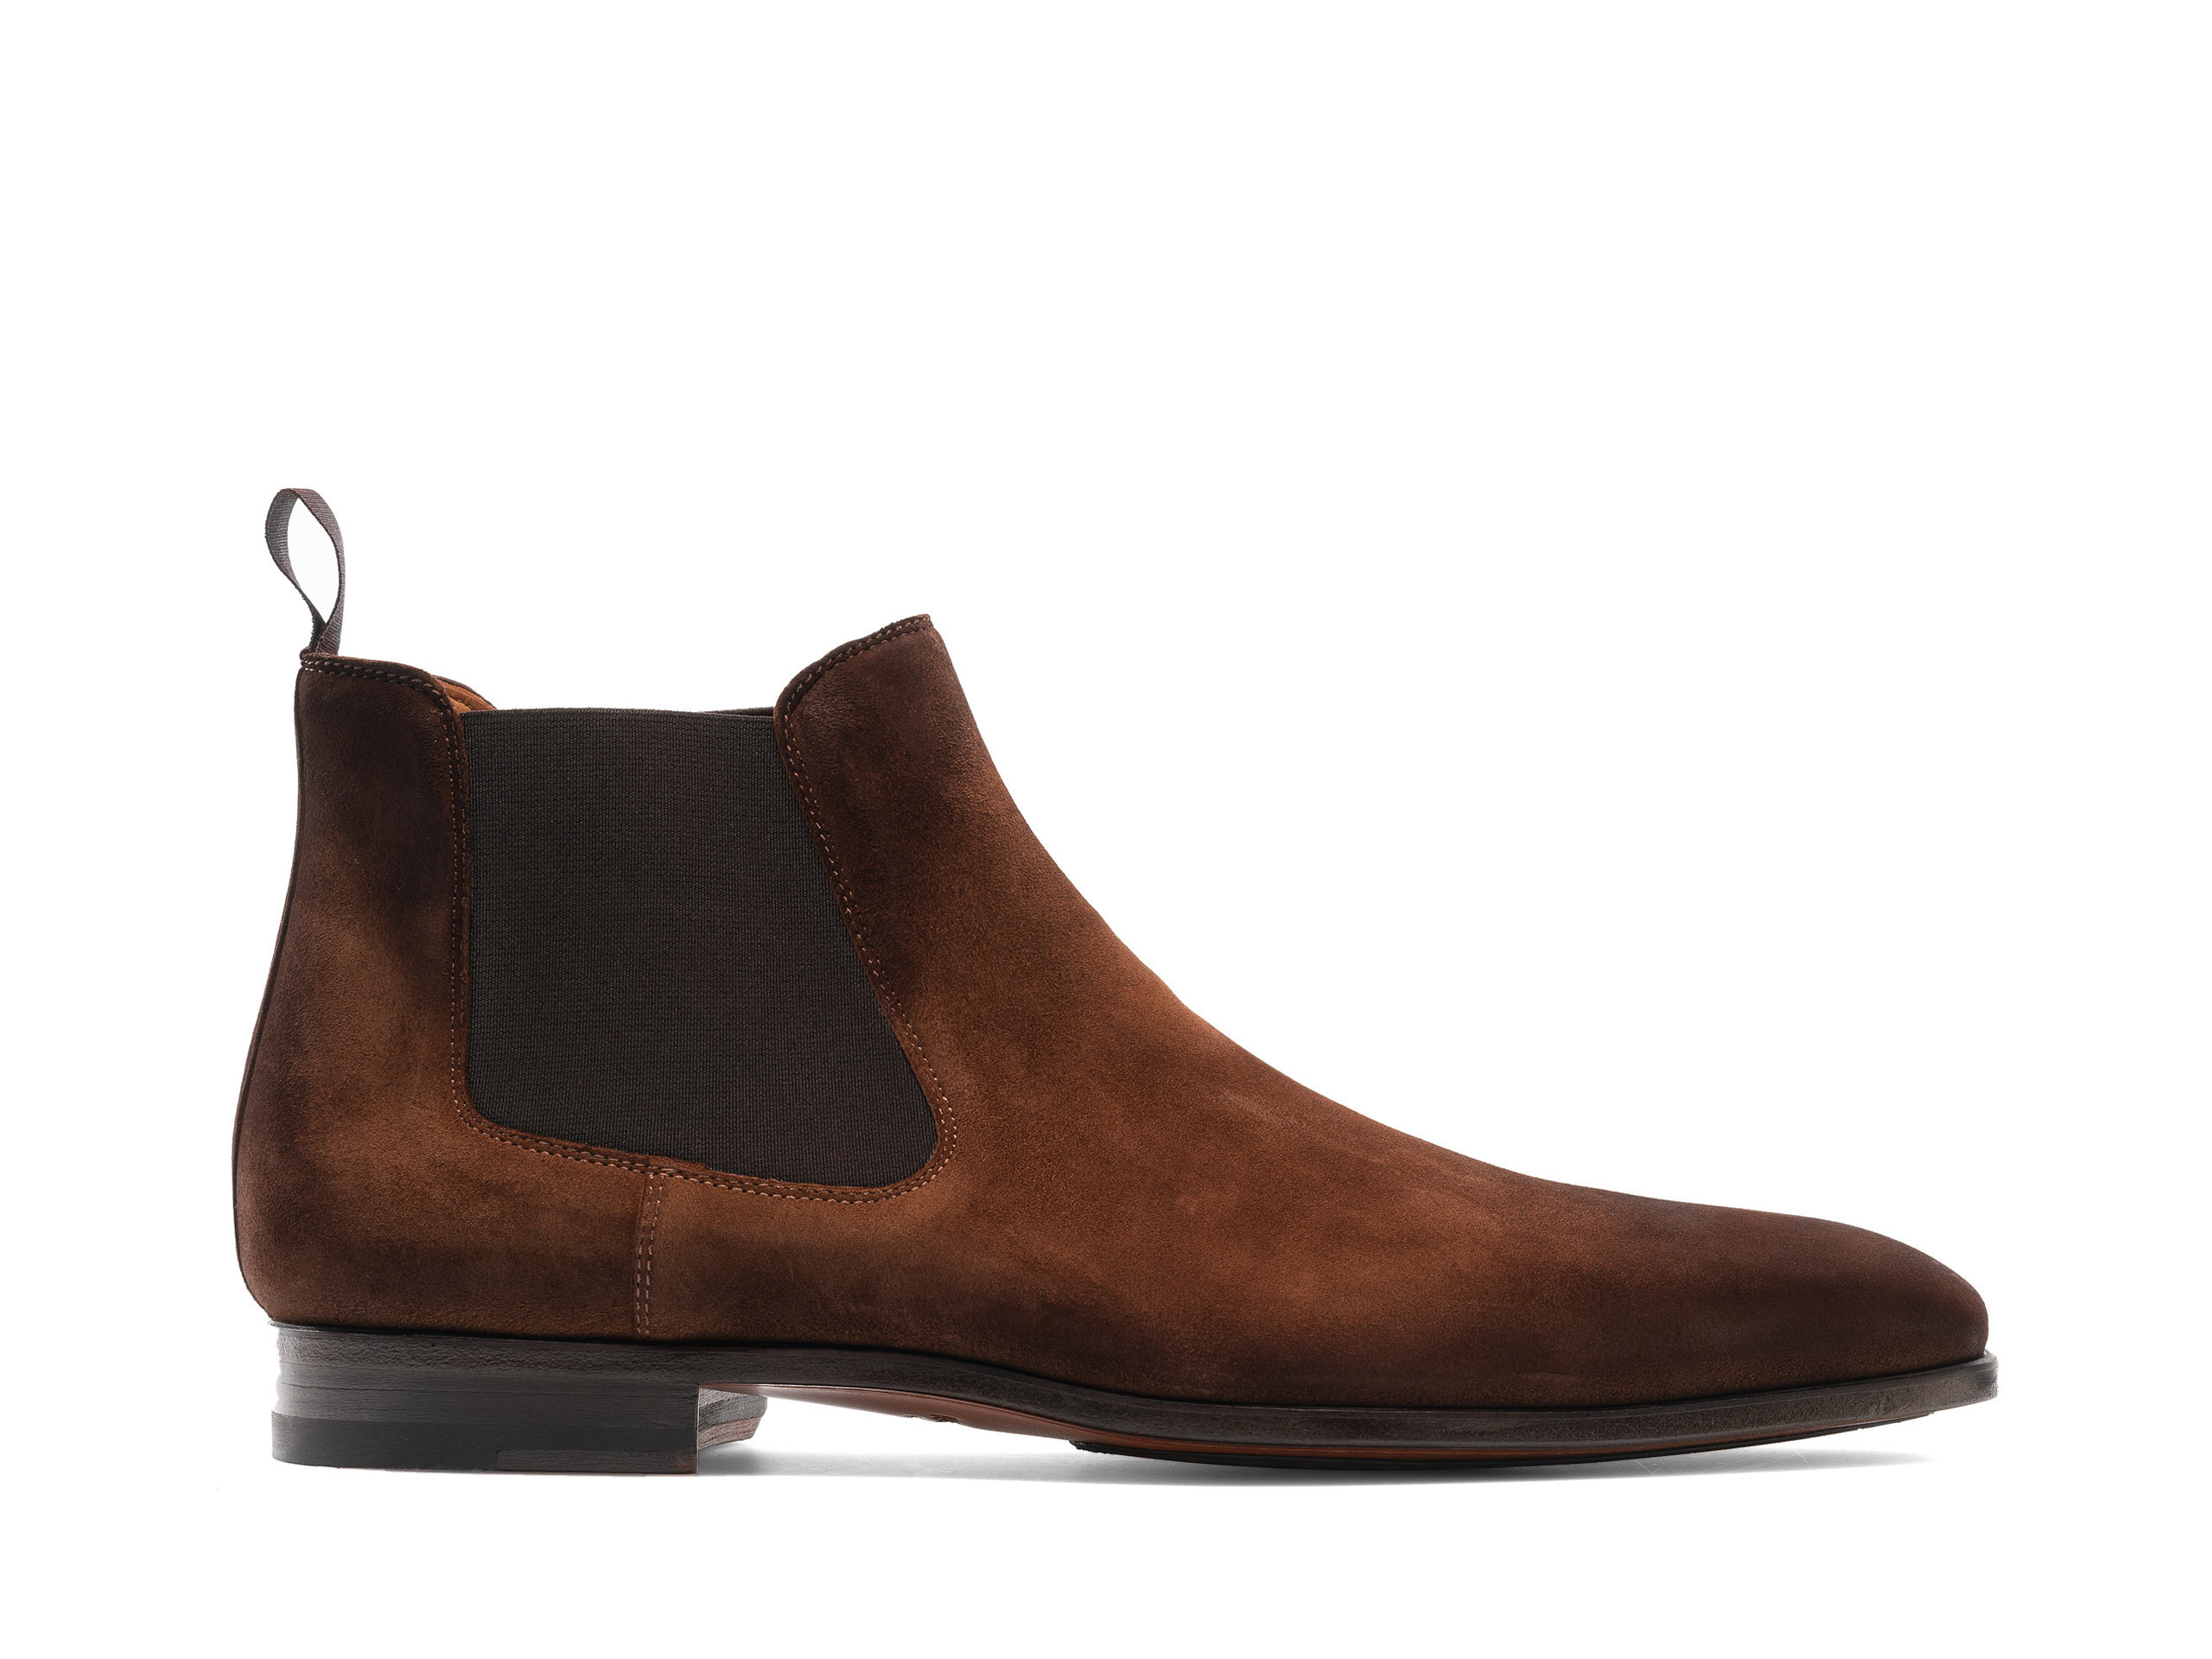 Side view of the Magnanni Shaw II Cognac Suede Men's Suede Chelsea Boots